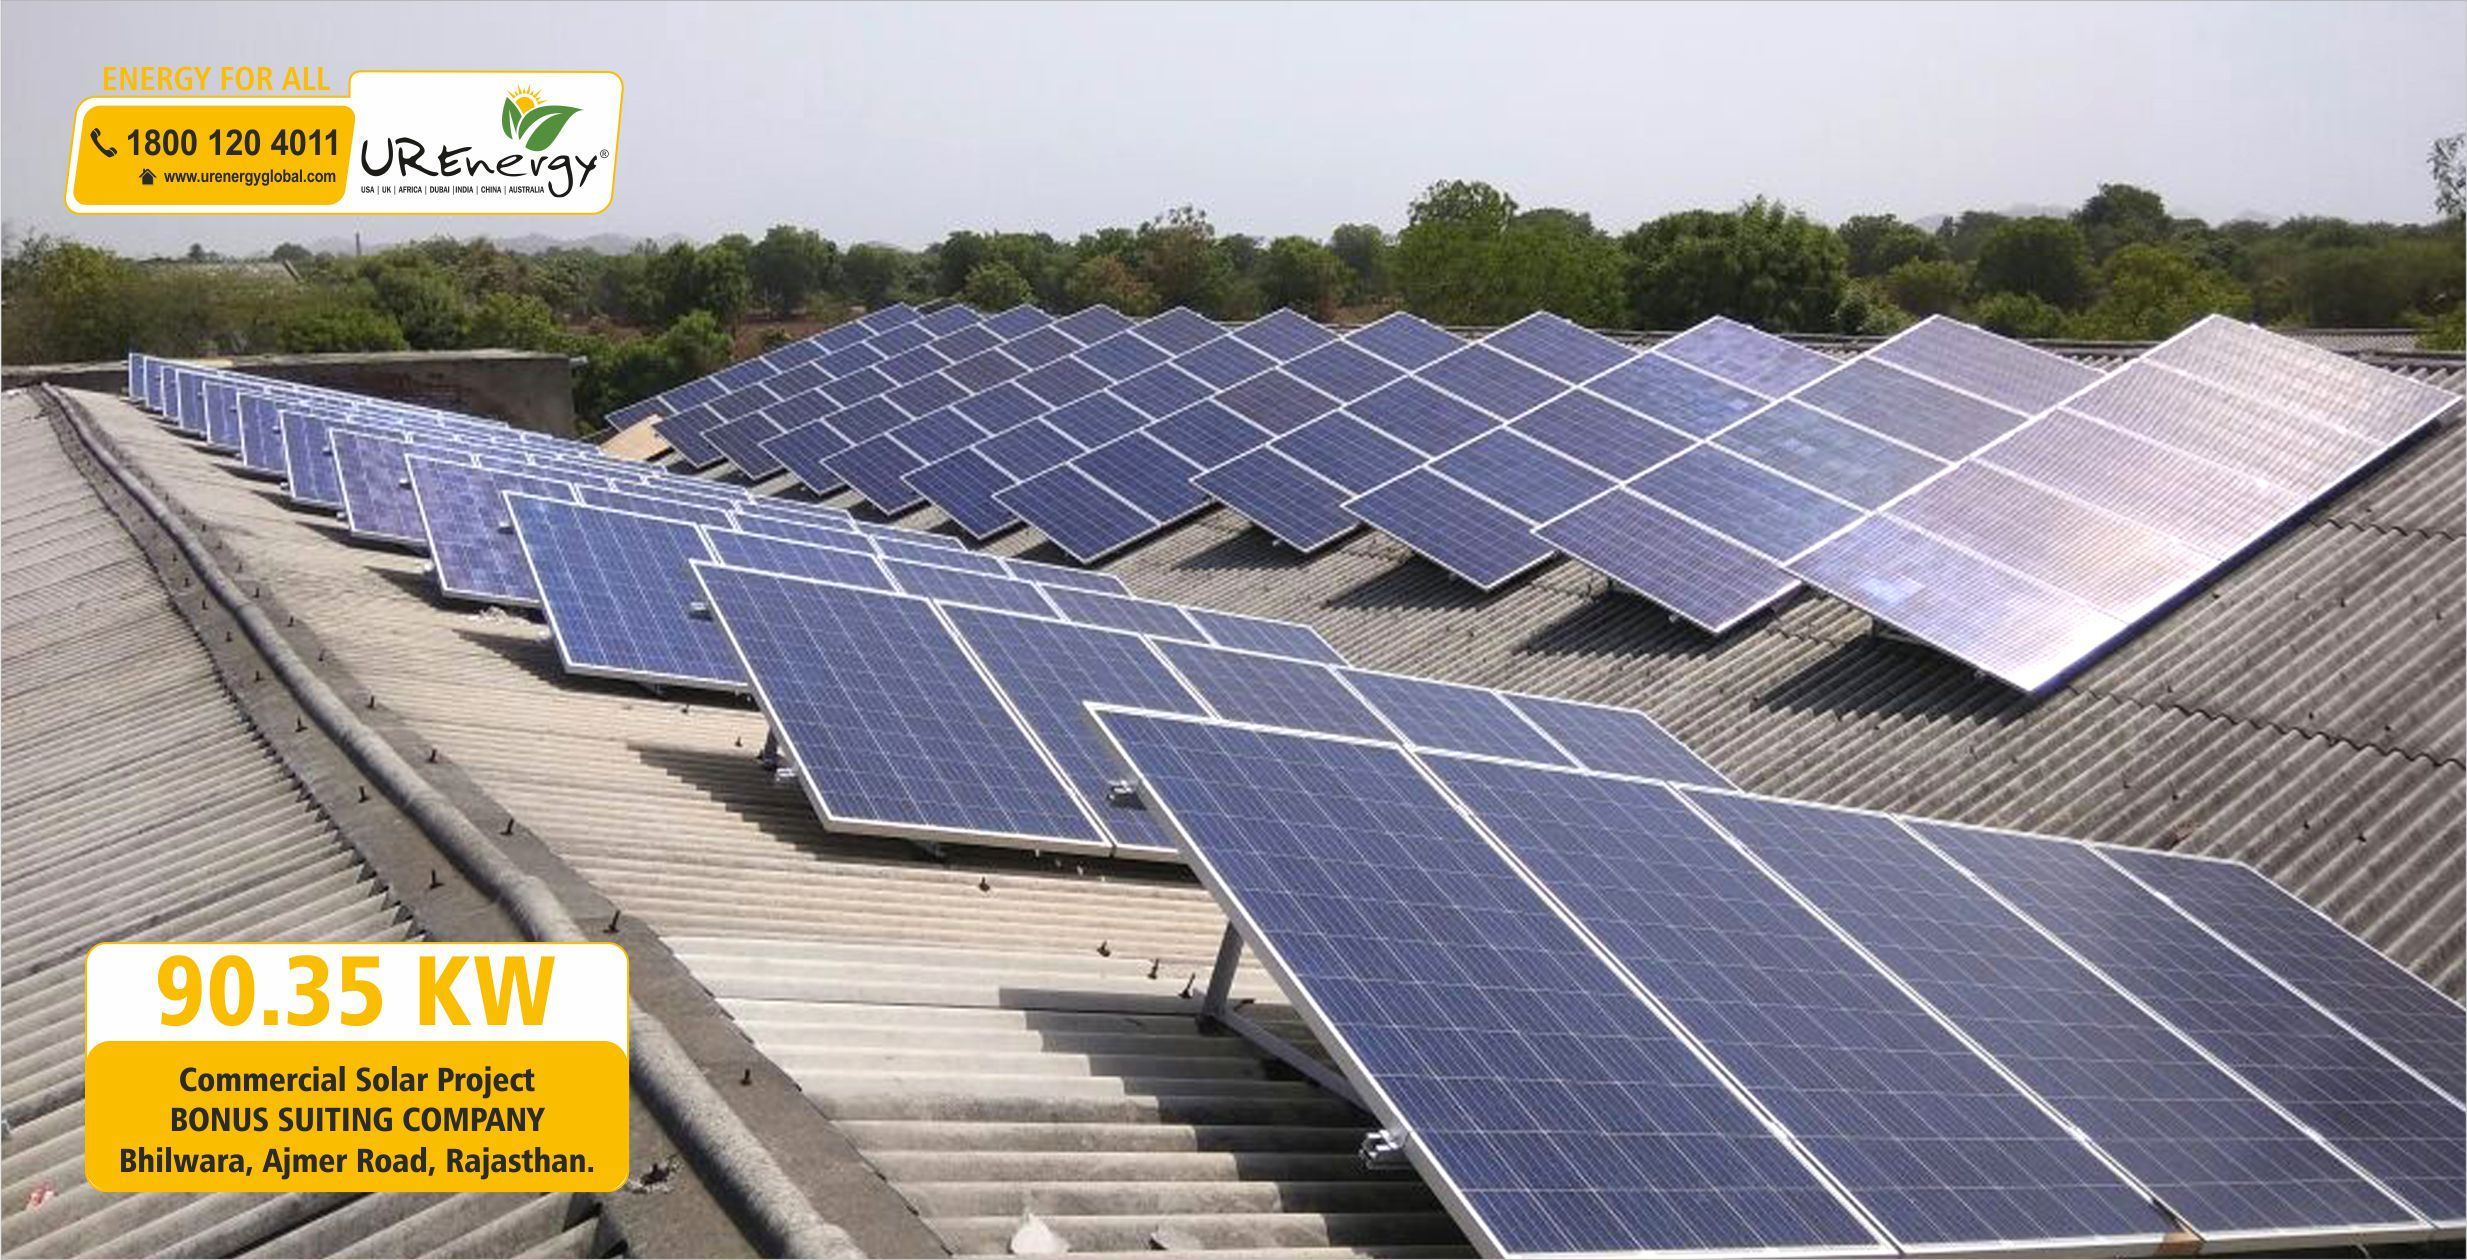 Commercial Solar Packages 50 Kw Solar Panel System Kit U R Energy Solar Solar Power Source Solar Power